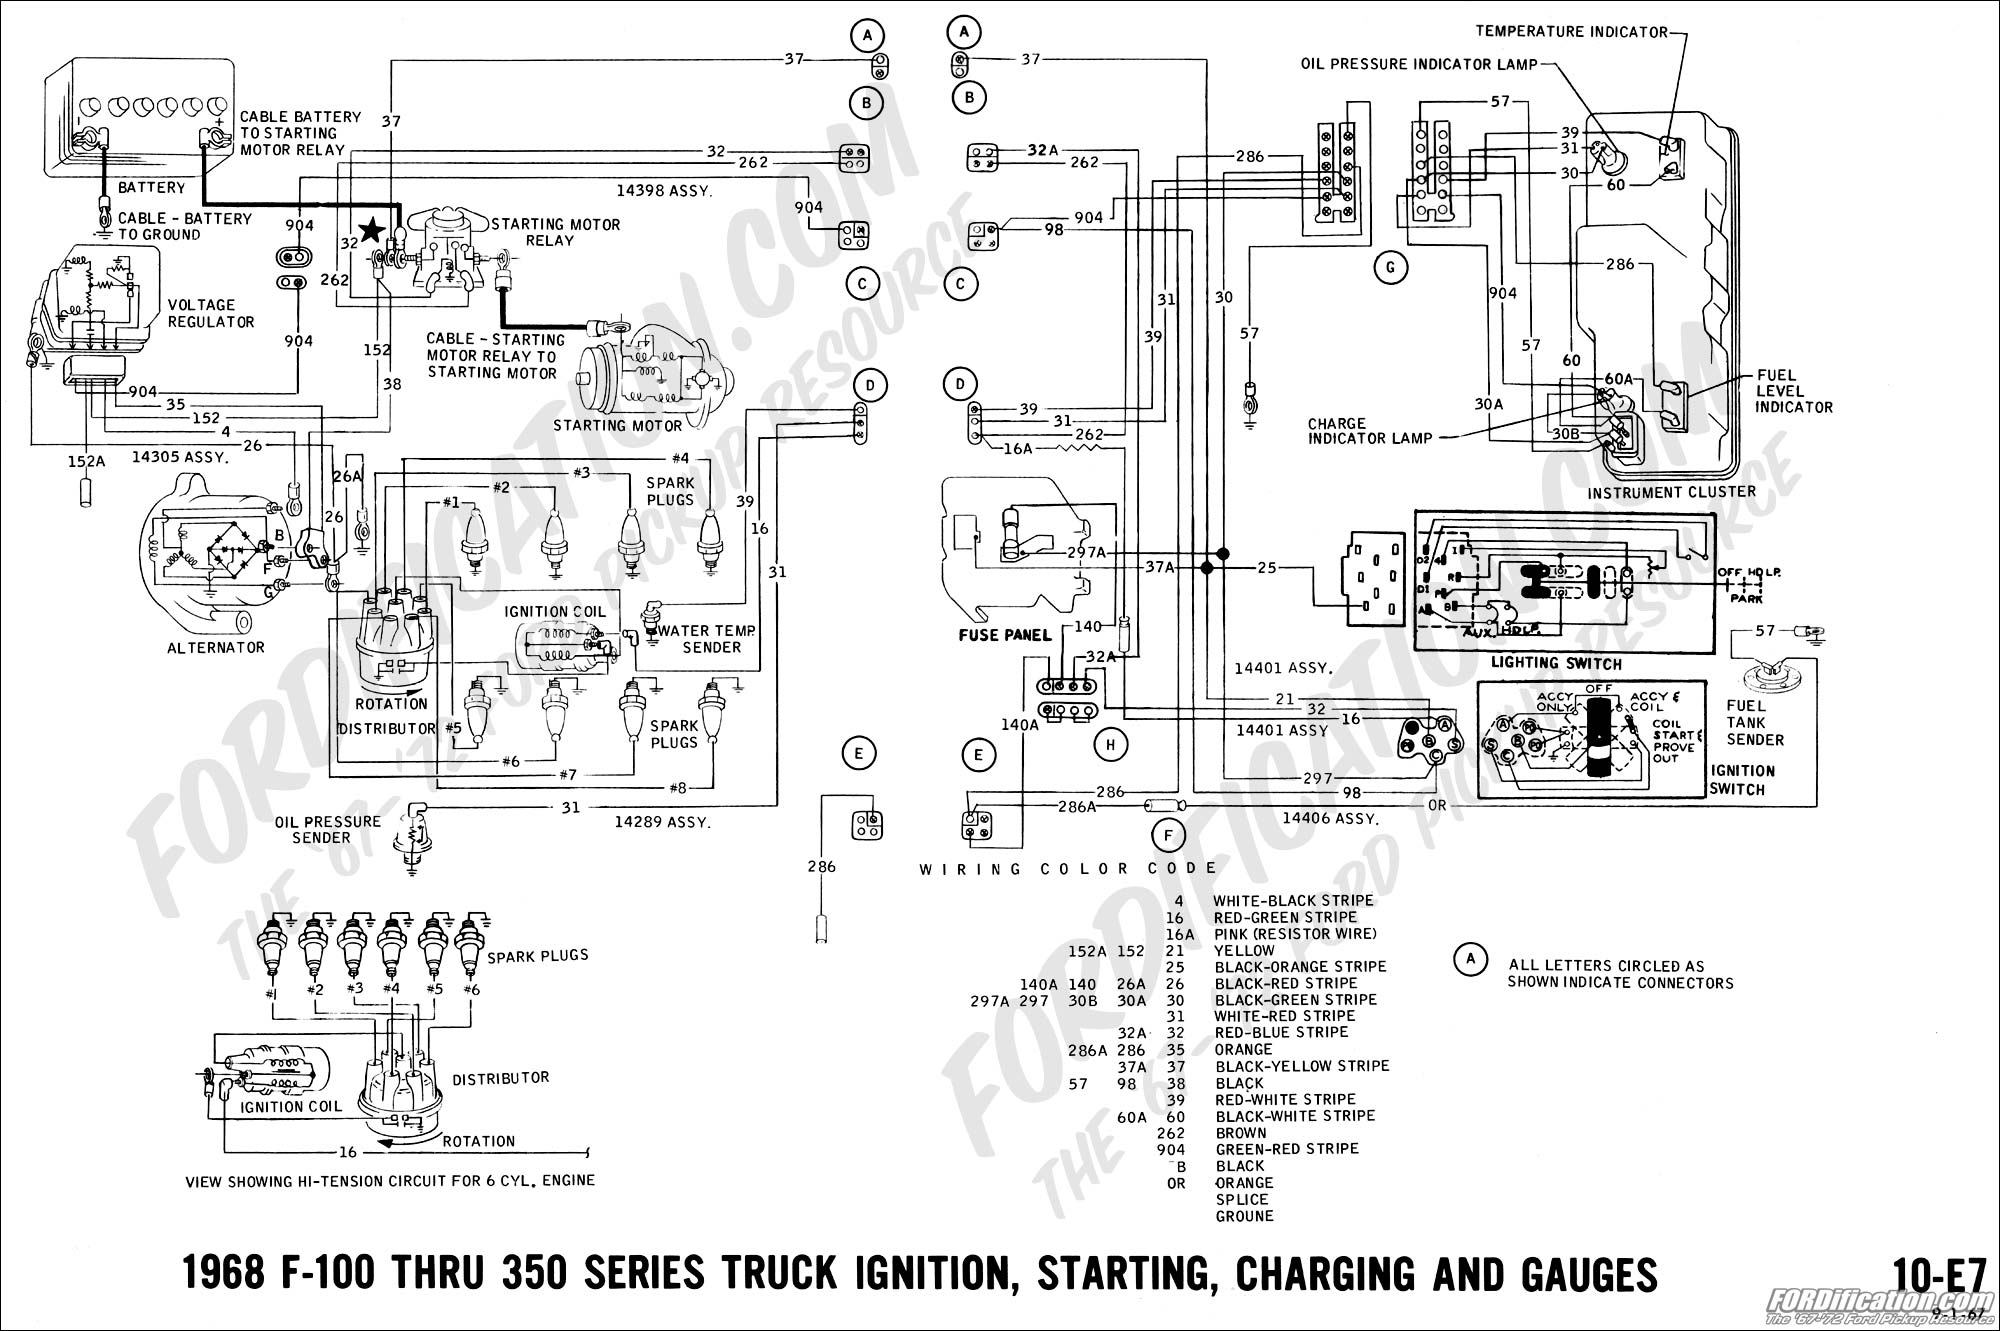 Ford Ignition System Wiring Harness Diagram Services 1987 Taurus Diagrams New Help The Fordification Com Forums Rh Bronco Key Pictures F 150 Stereo Wire